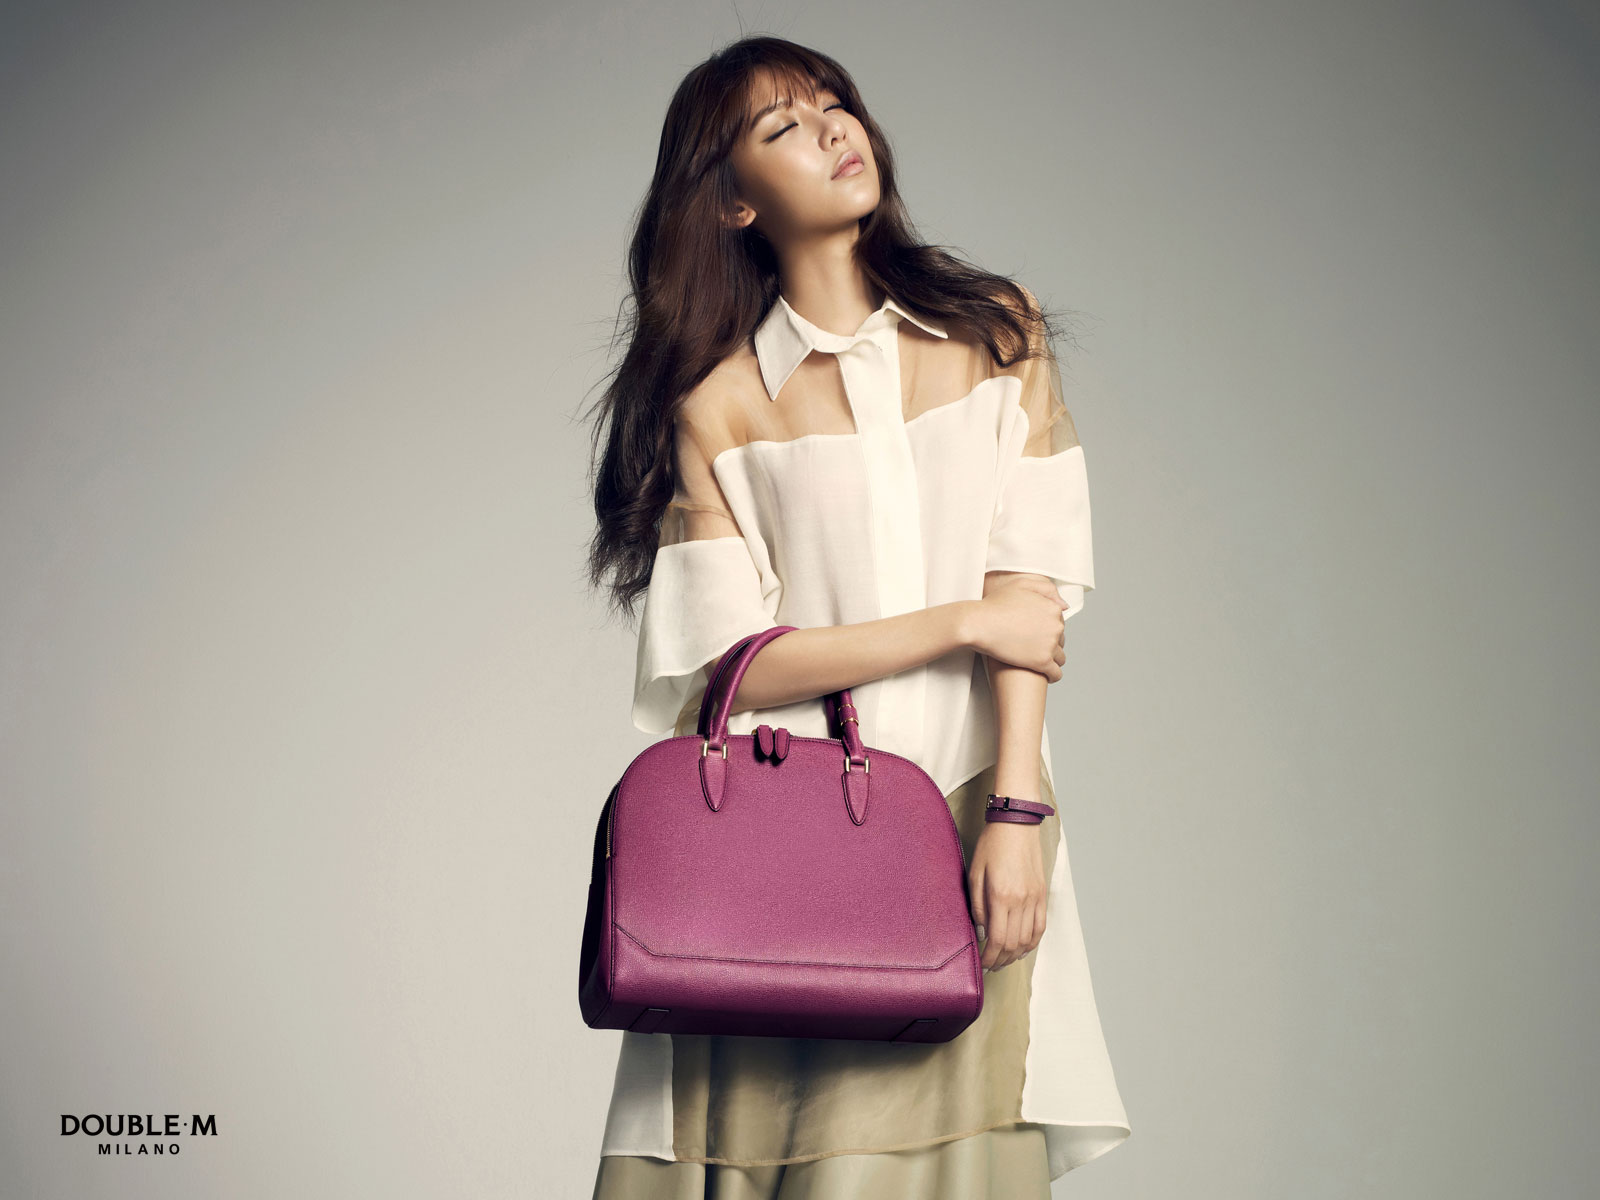 SNSD Sooyoung Double-M wallpaper